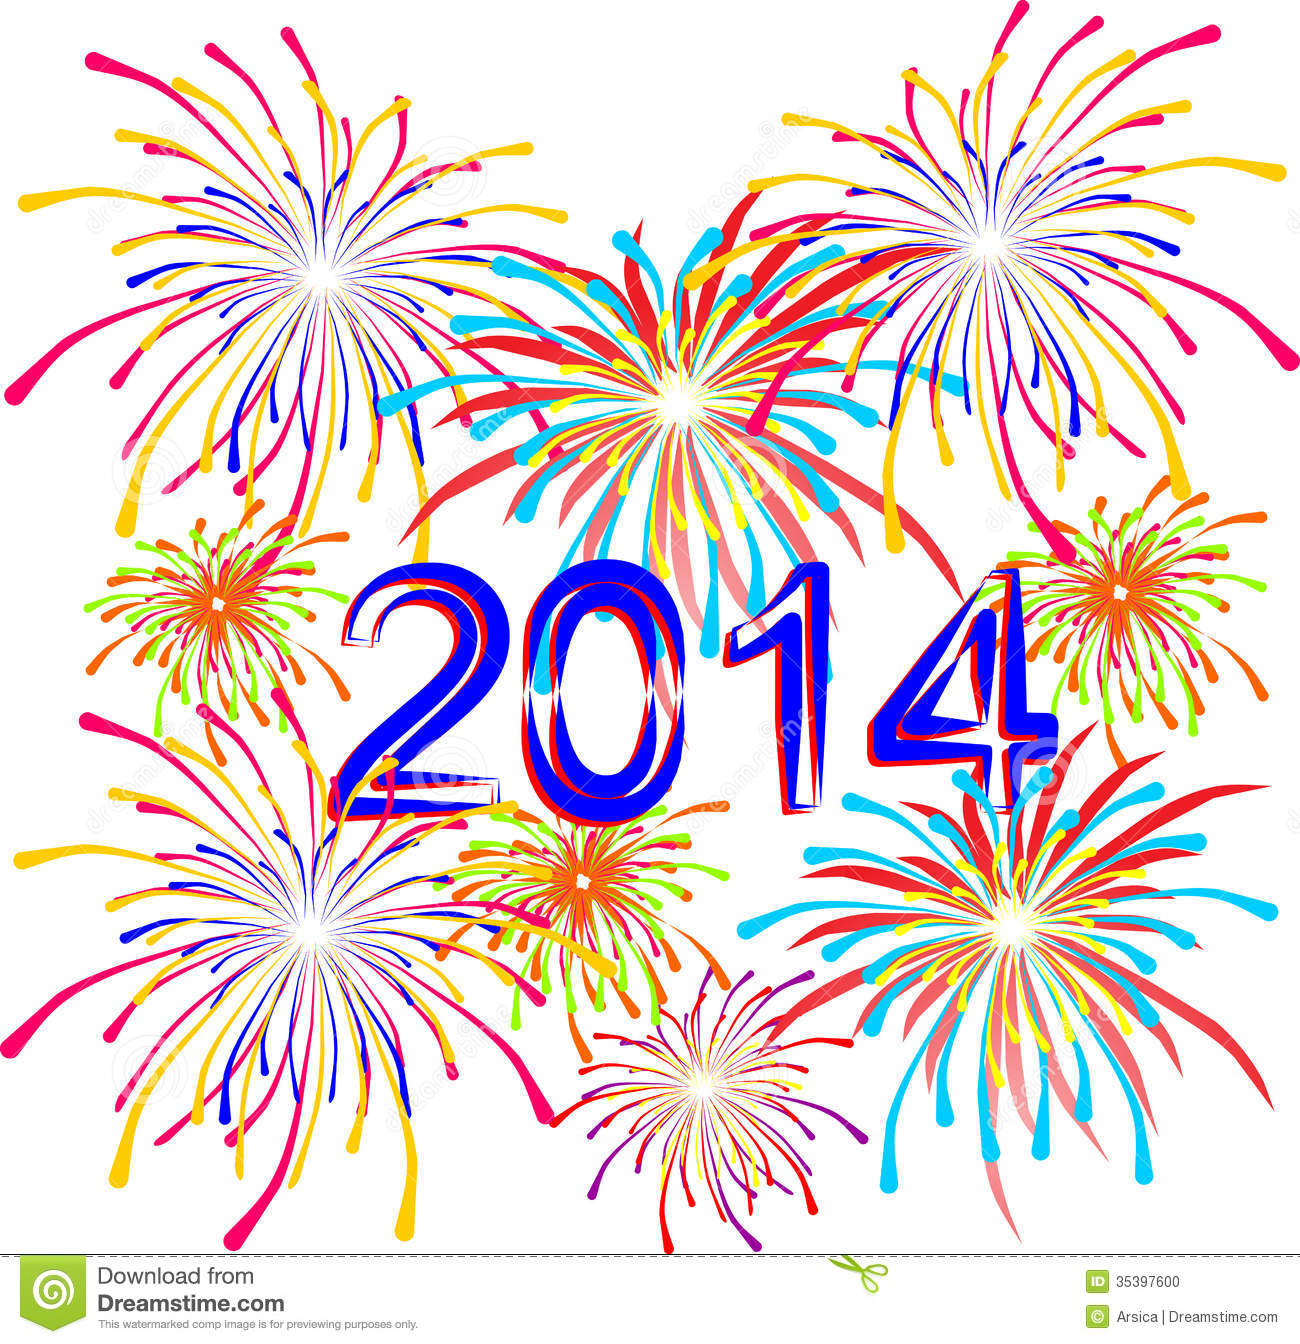 Firework Images Clip Art - Synkee